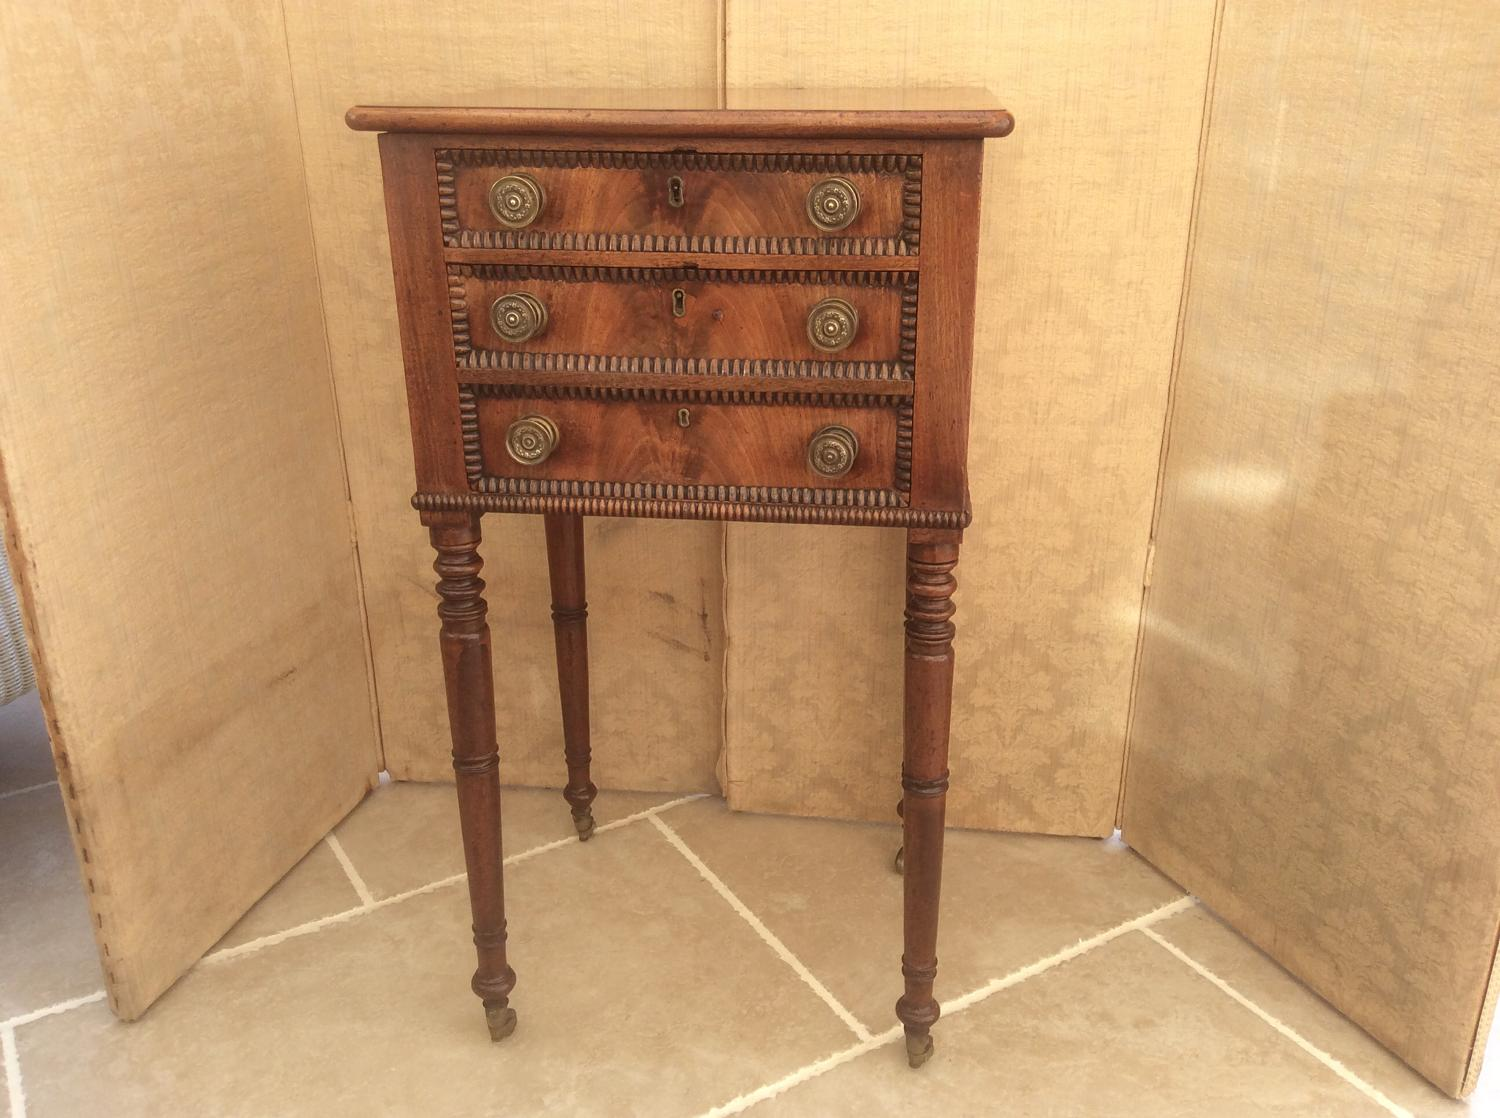 Regency period work table